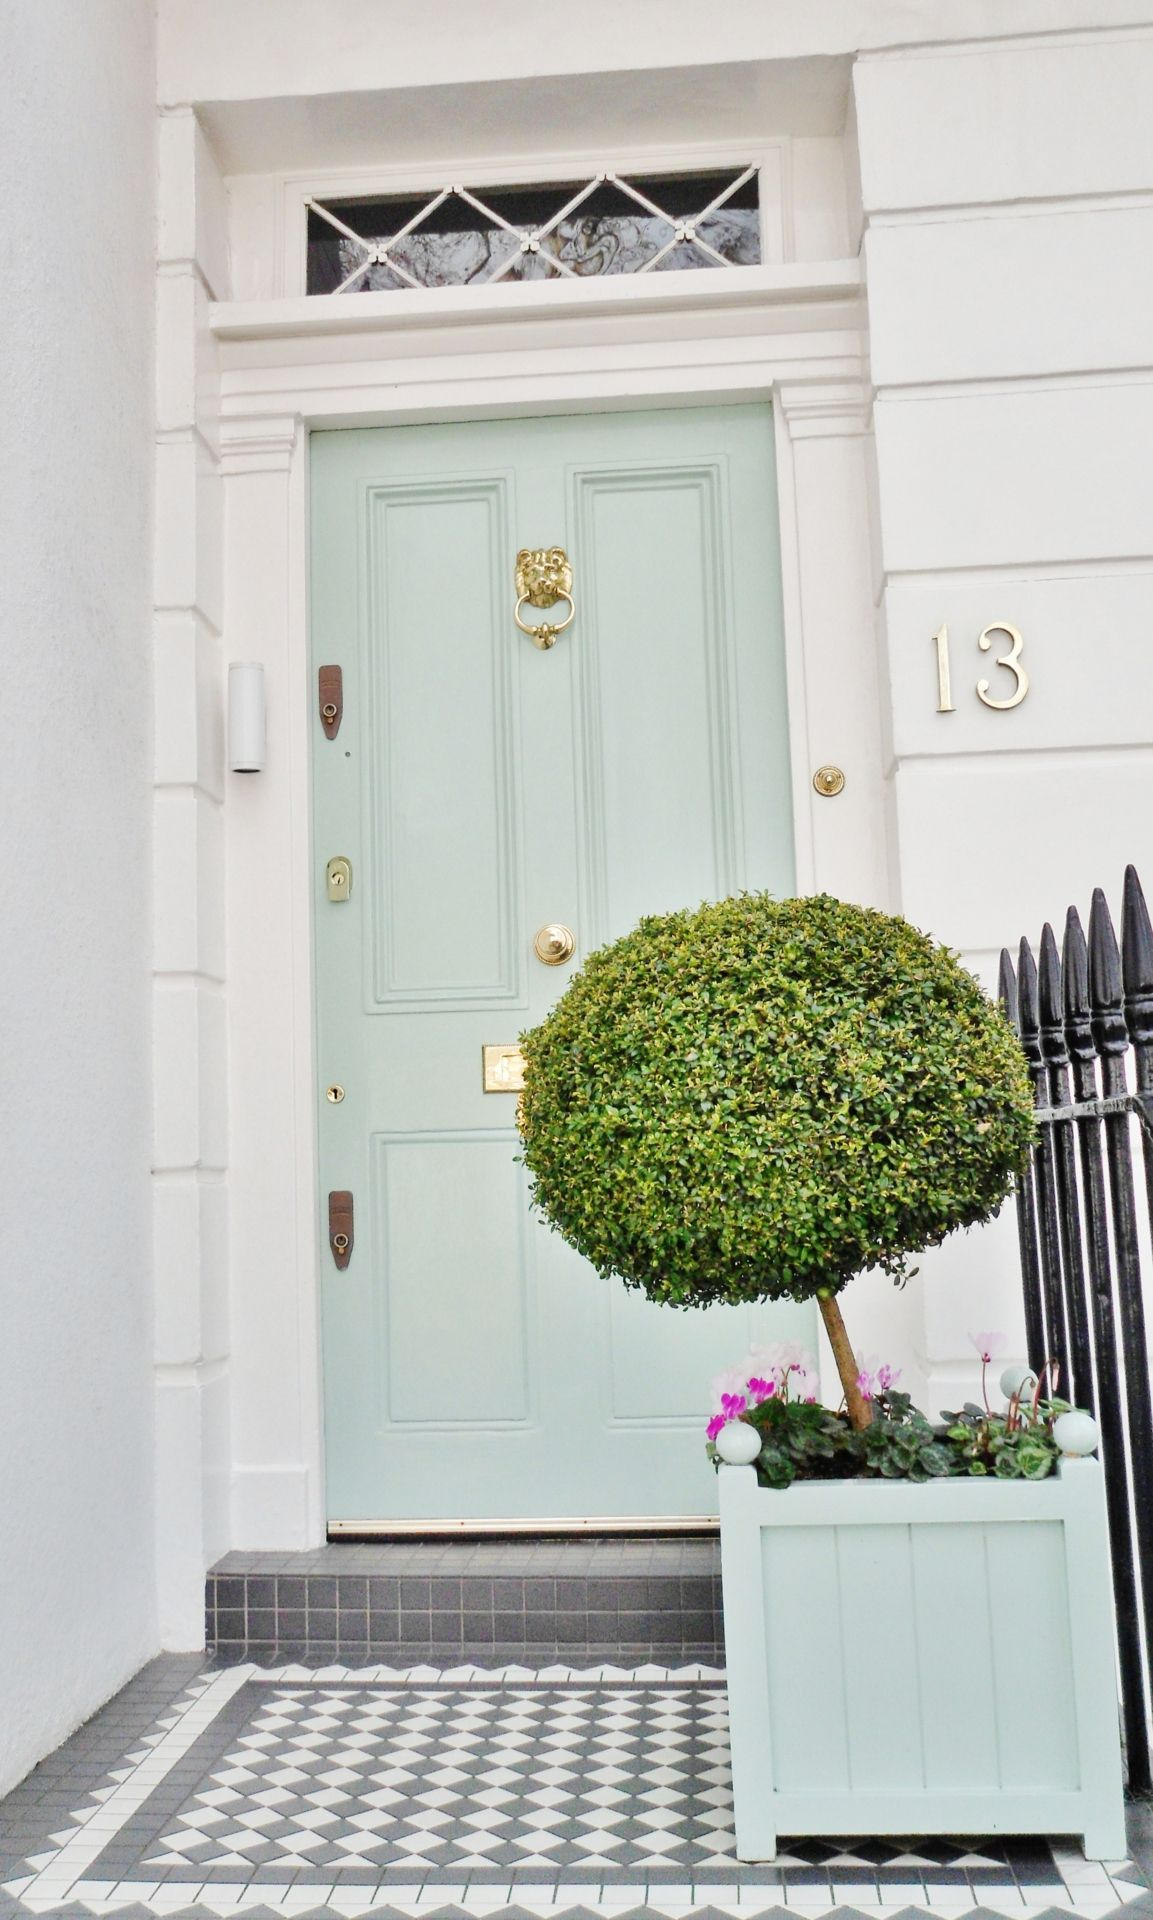 House approach in Chelsea, London. Mint-colored door, checkered ...